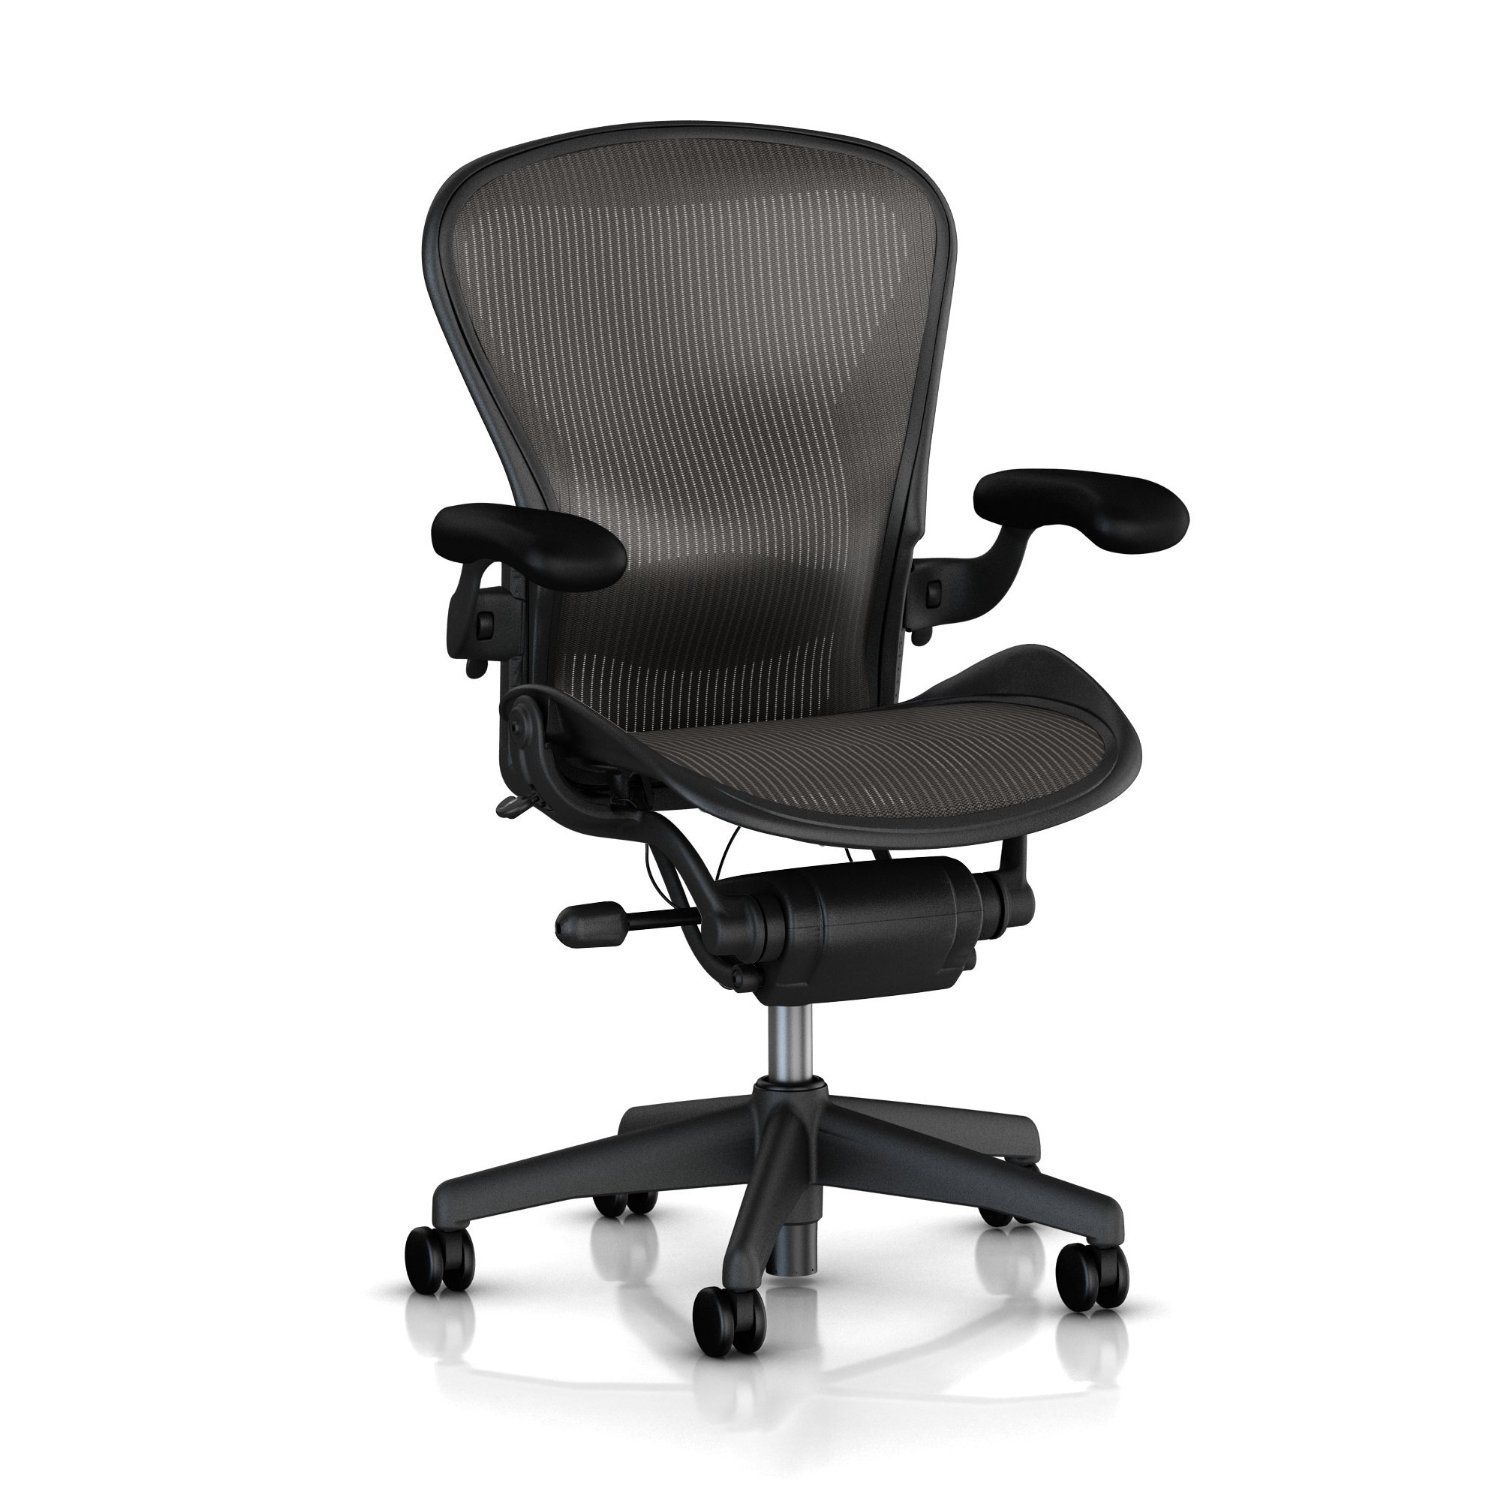 Herman Miller Aeron Executive Office Chair-Size B-Fully Adjustable Arms-lumbar Support Open Box by Herman Miller